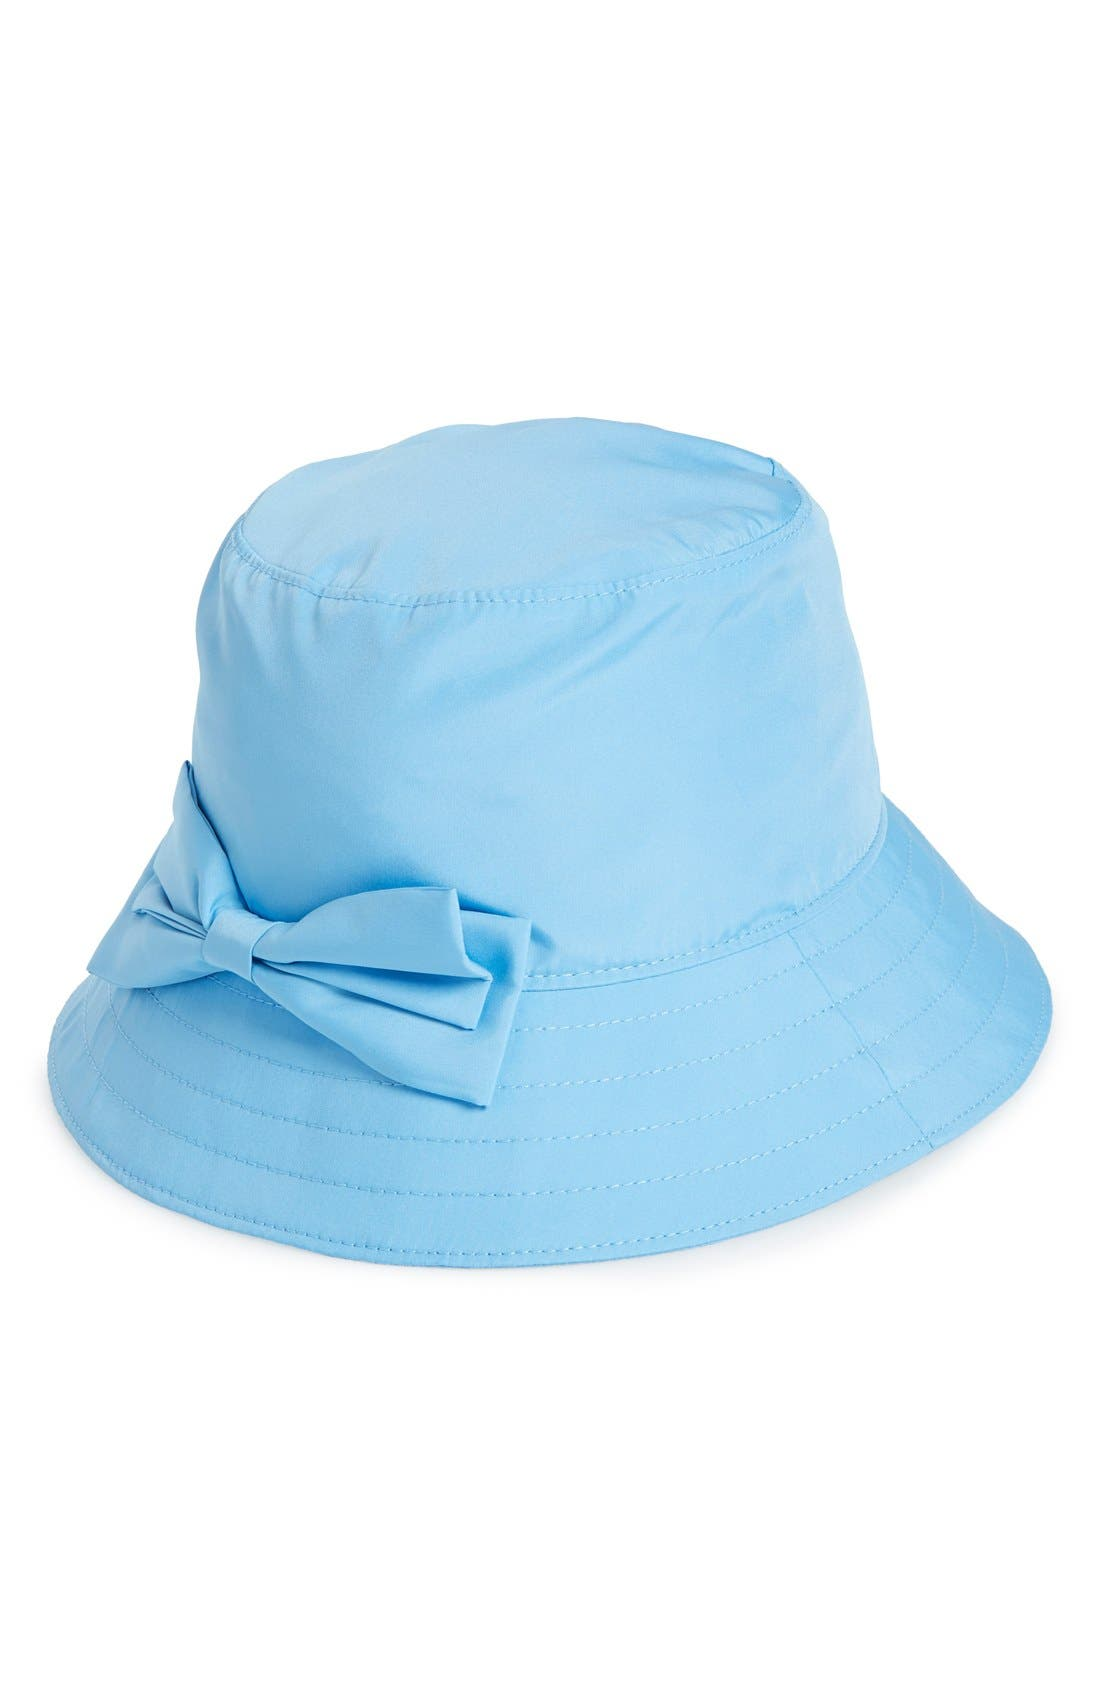 Main Image - kate spade new york rain bucket hat